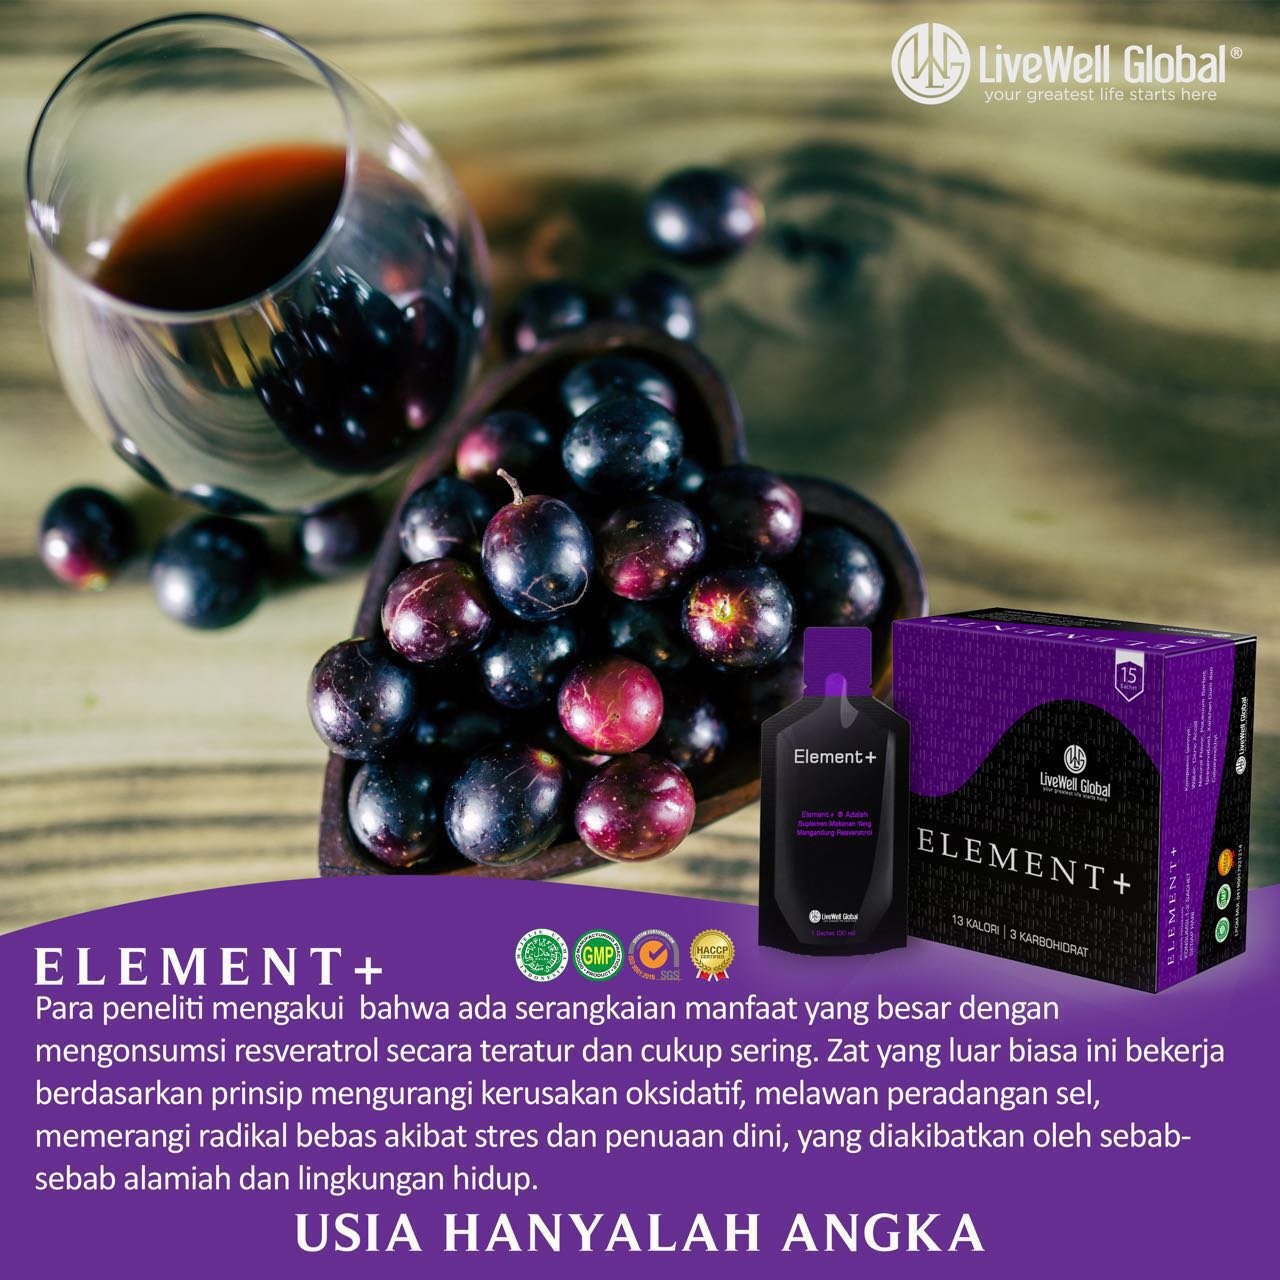 Peluang Bisnis Ideal Abad 21 2016 Gold 100rb Dapat 200rbgold Livewell Globalblogspotcoid Networkcom